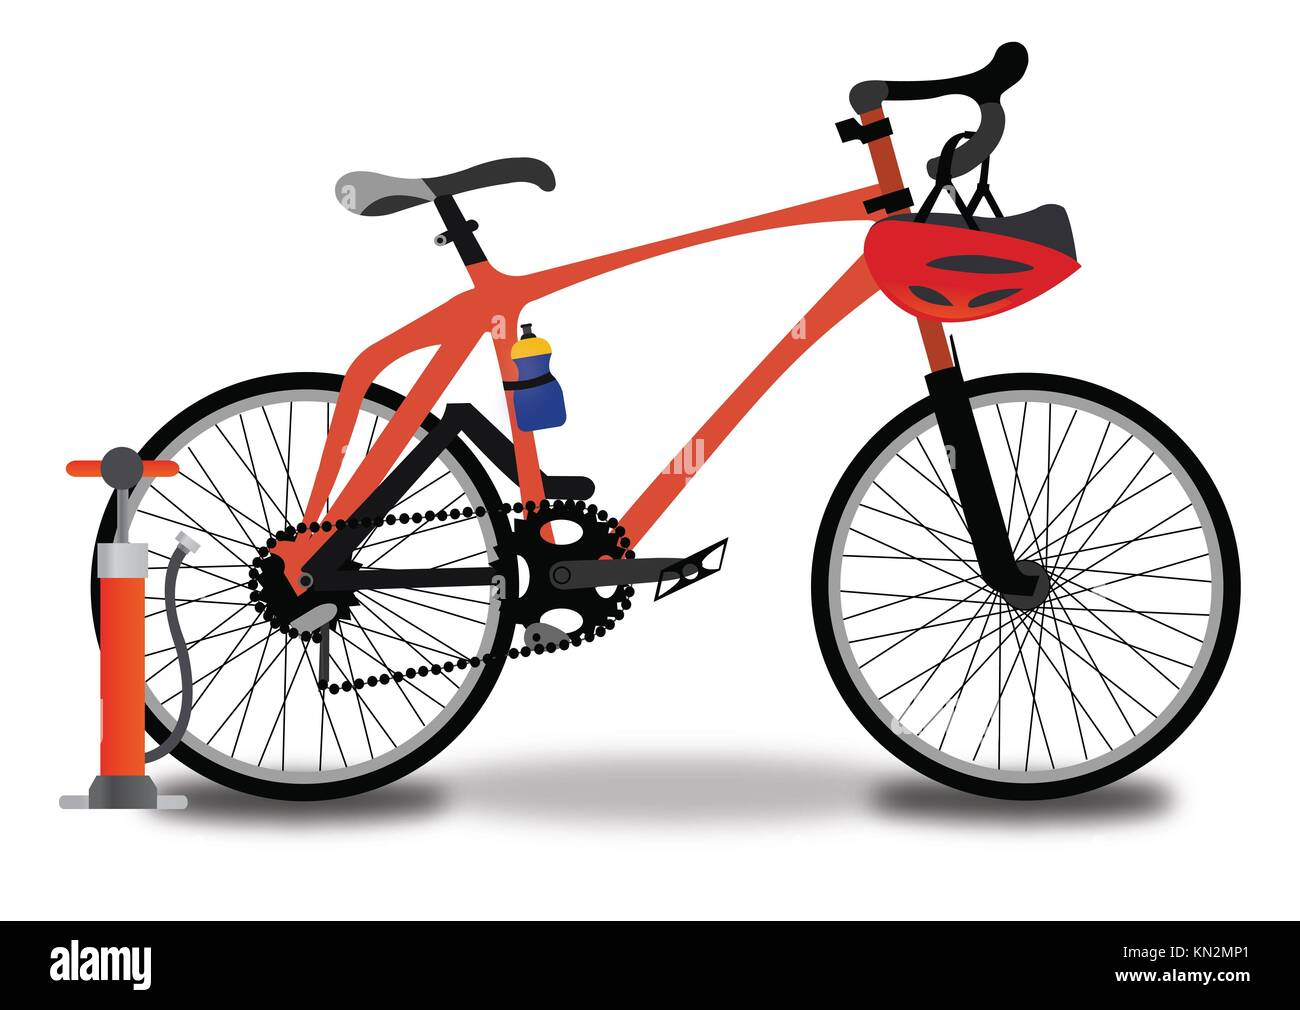 Racing Bicycle, Red and Black, with Tire Pump, Helmet, and Water Bottle, vector illustration - Stock Image